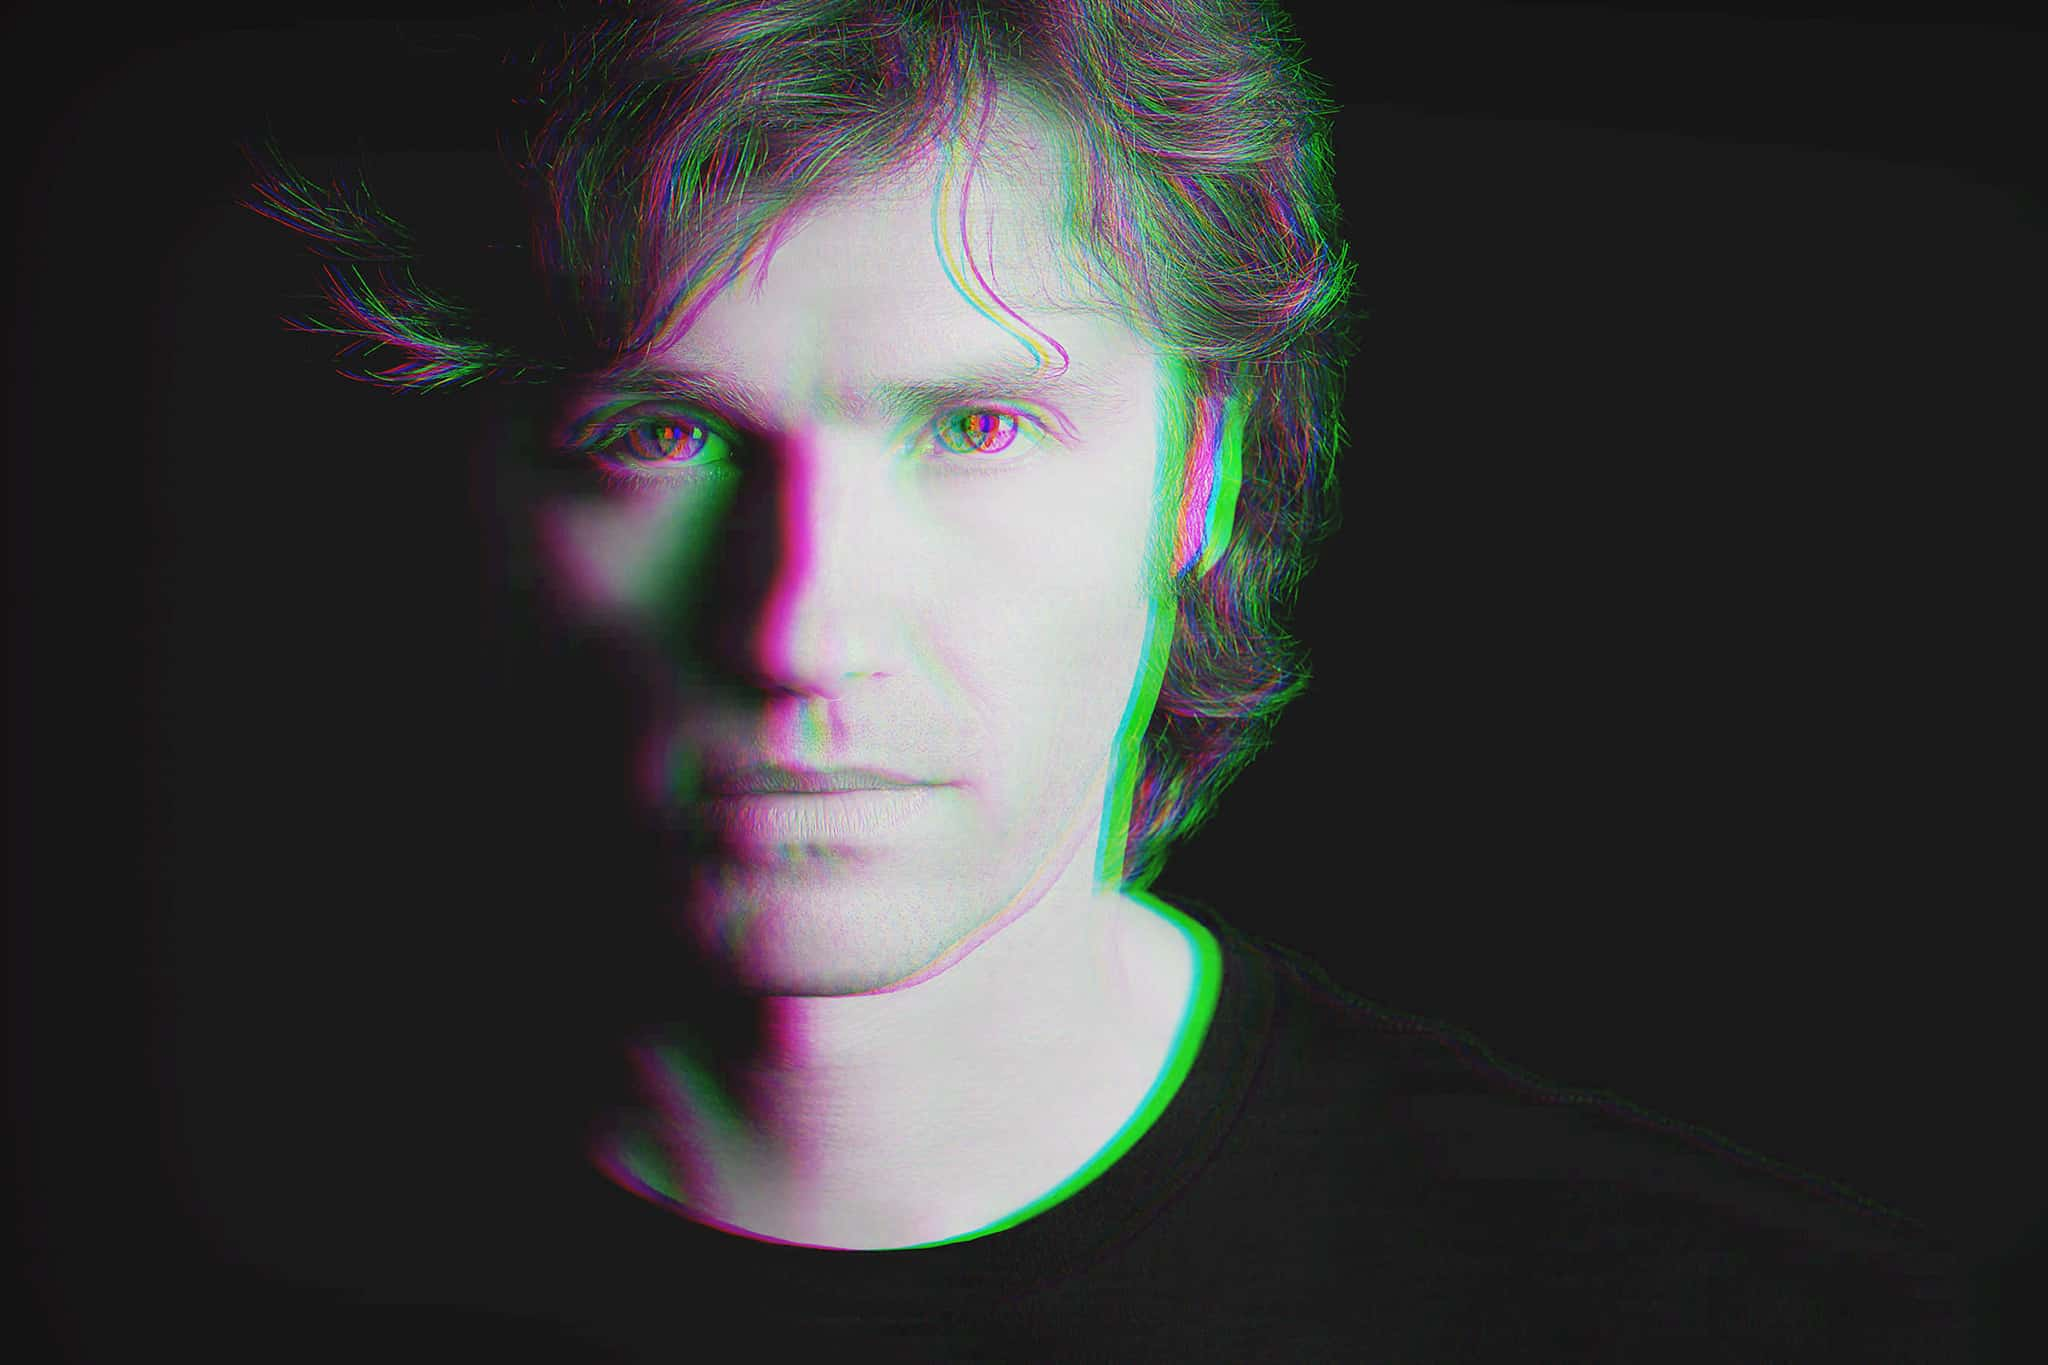 HERNAN CATTANEO – NO INTRODUCTION NEEDED.